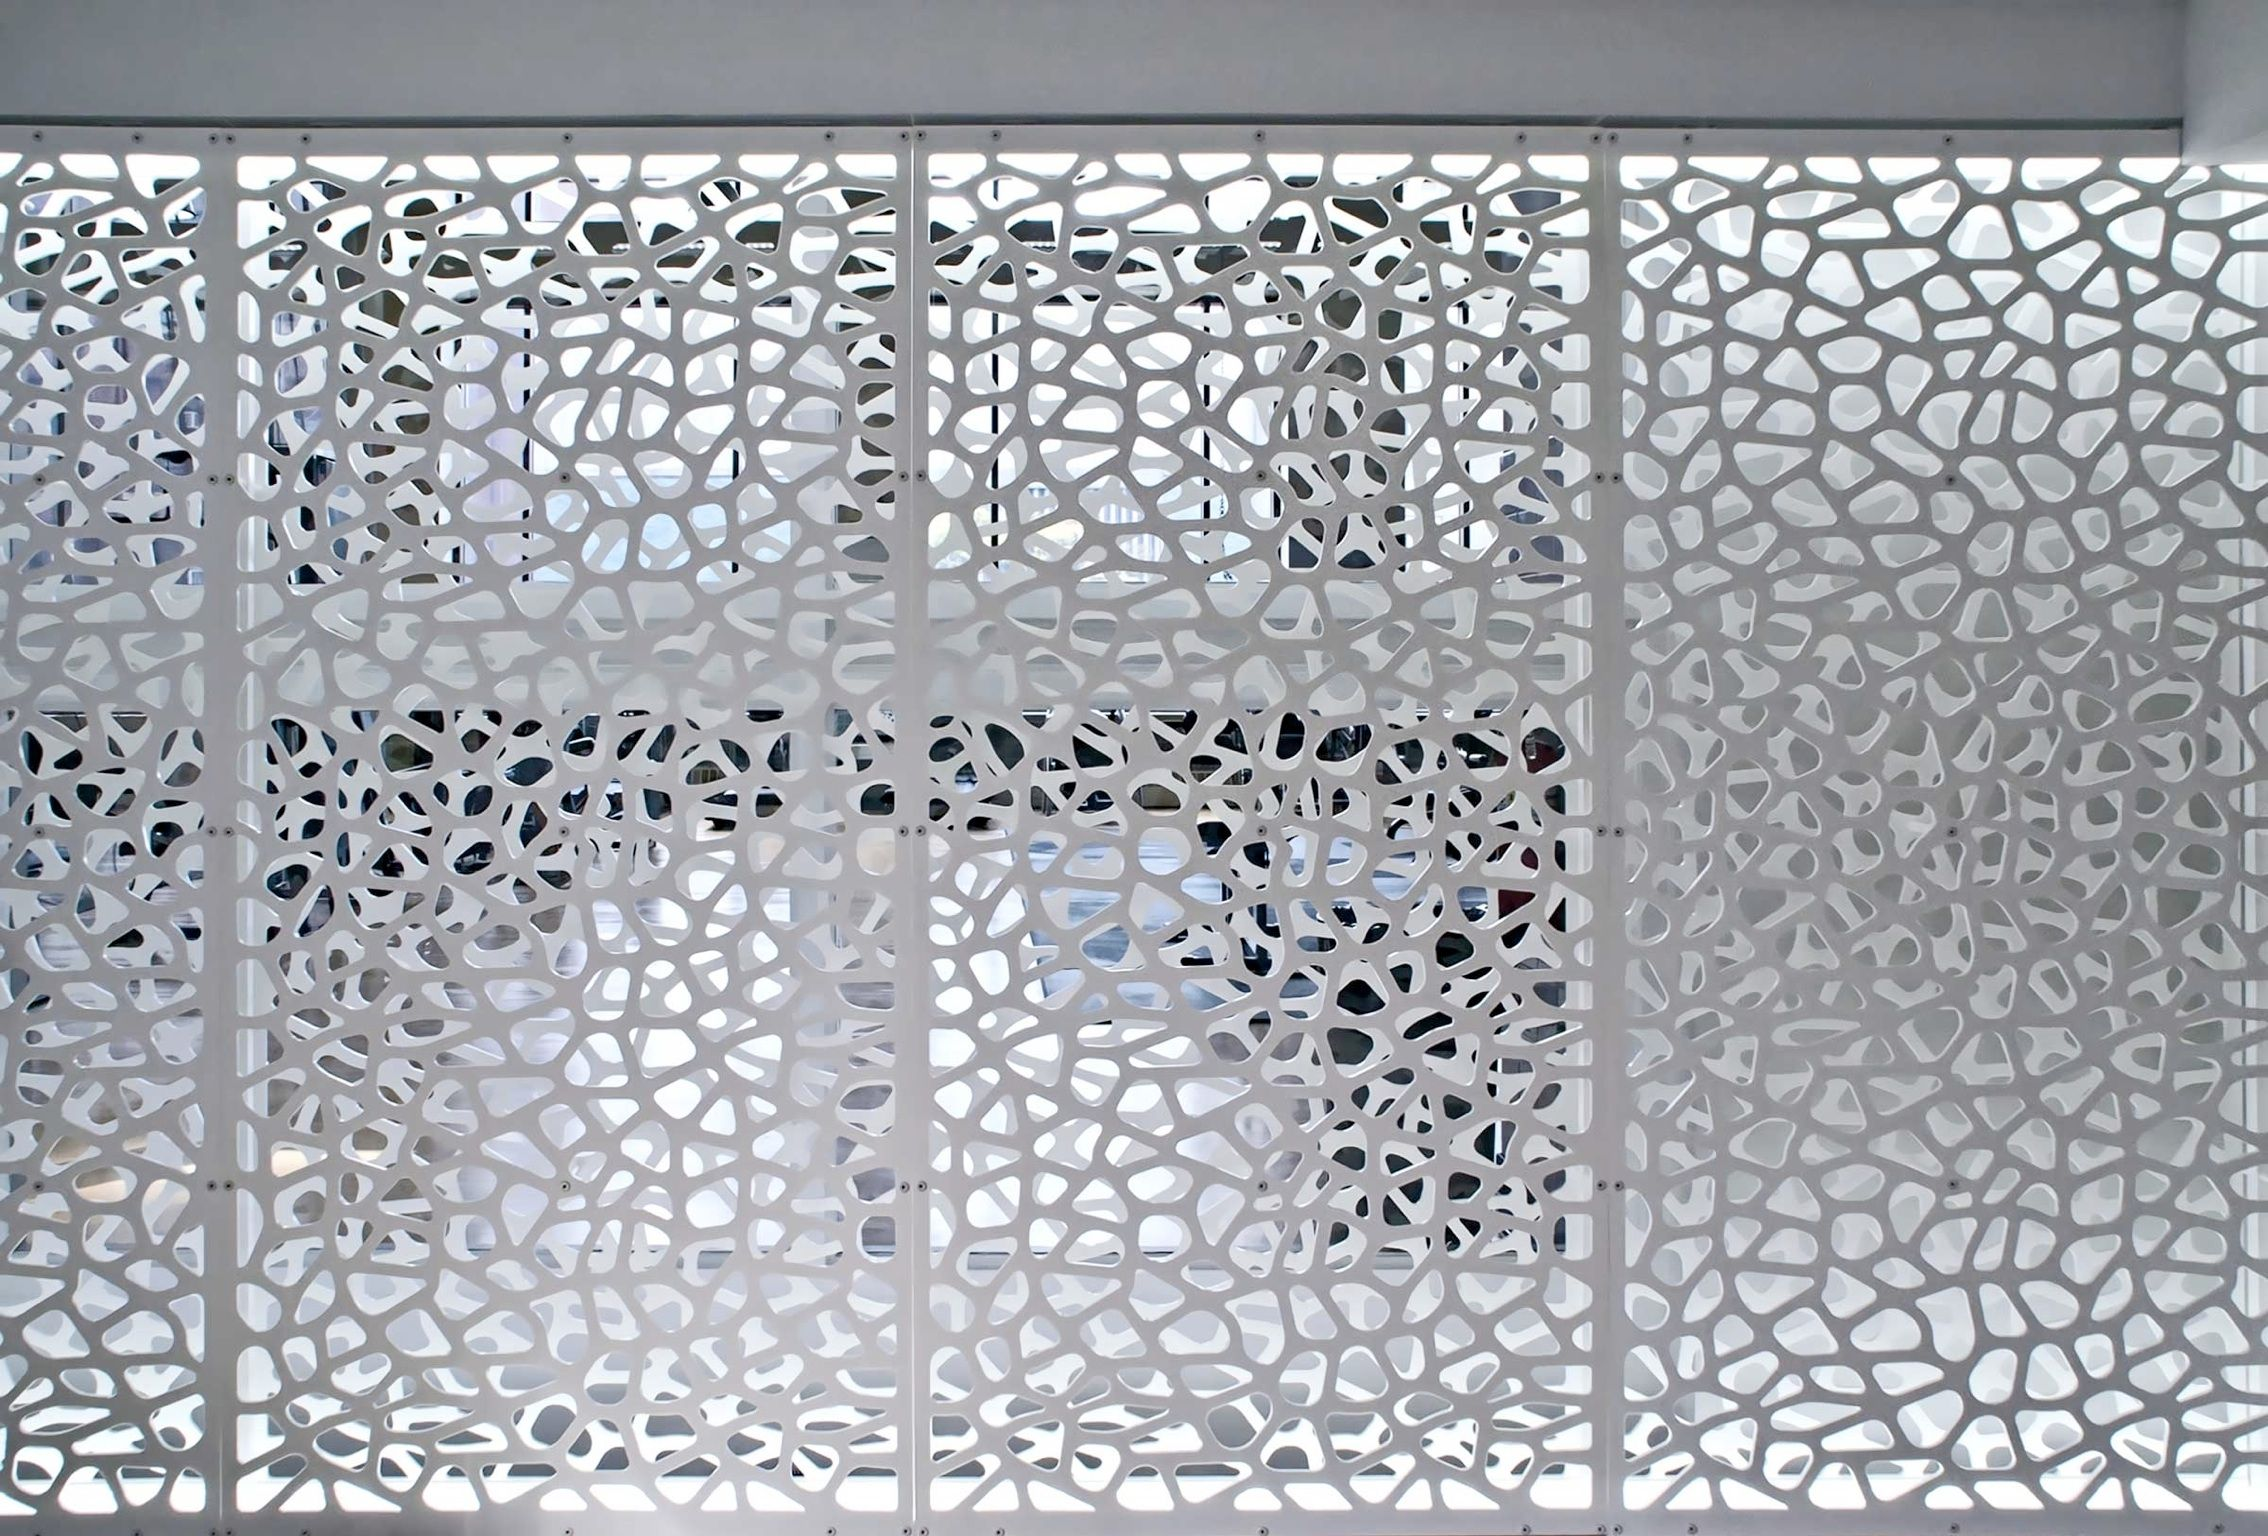 Architectural Screen Wall Partitions Decorative Screens Cell Pattern With Custom Led Lights Decorative Screens Screen Design Modern Screens